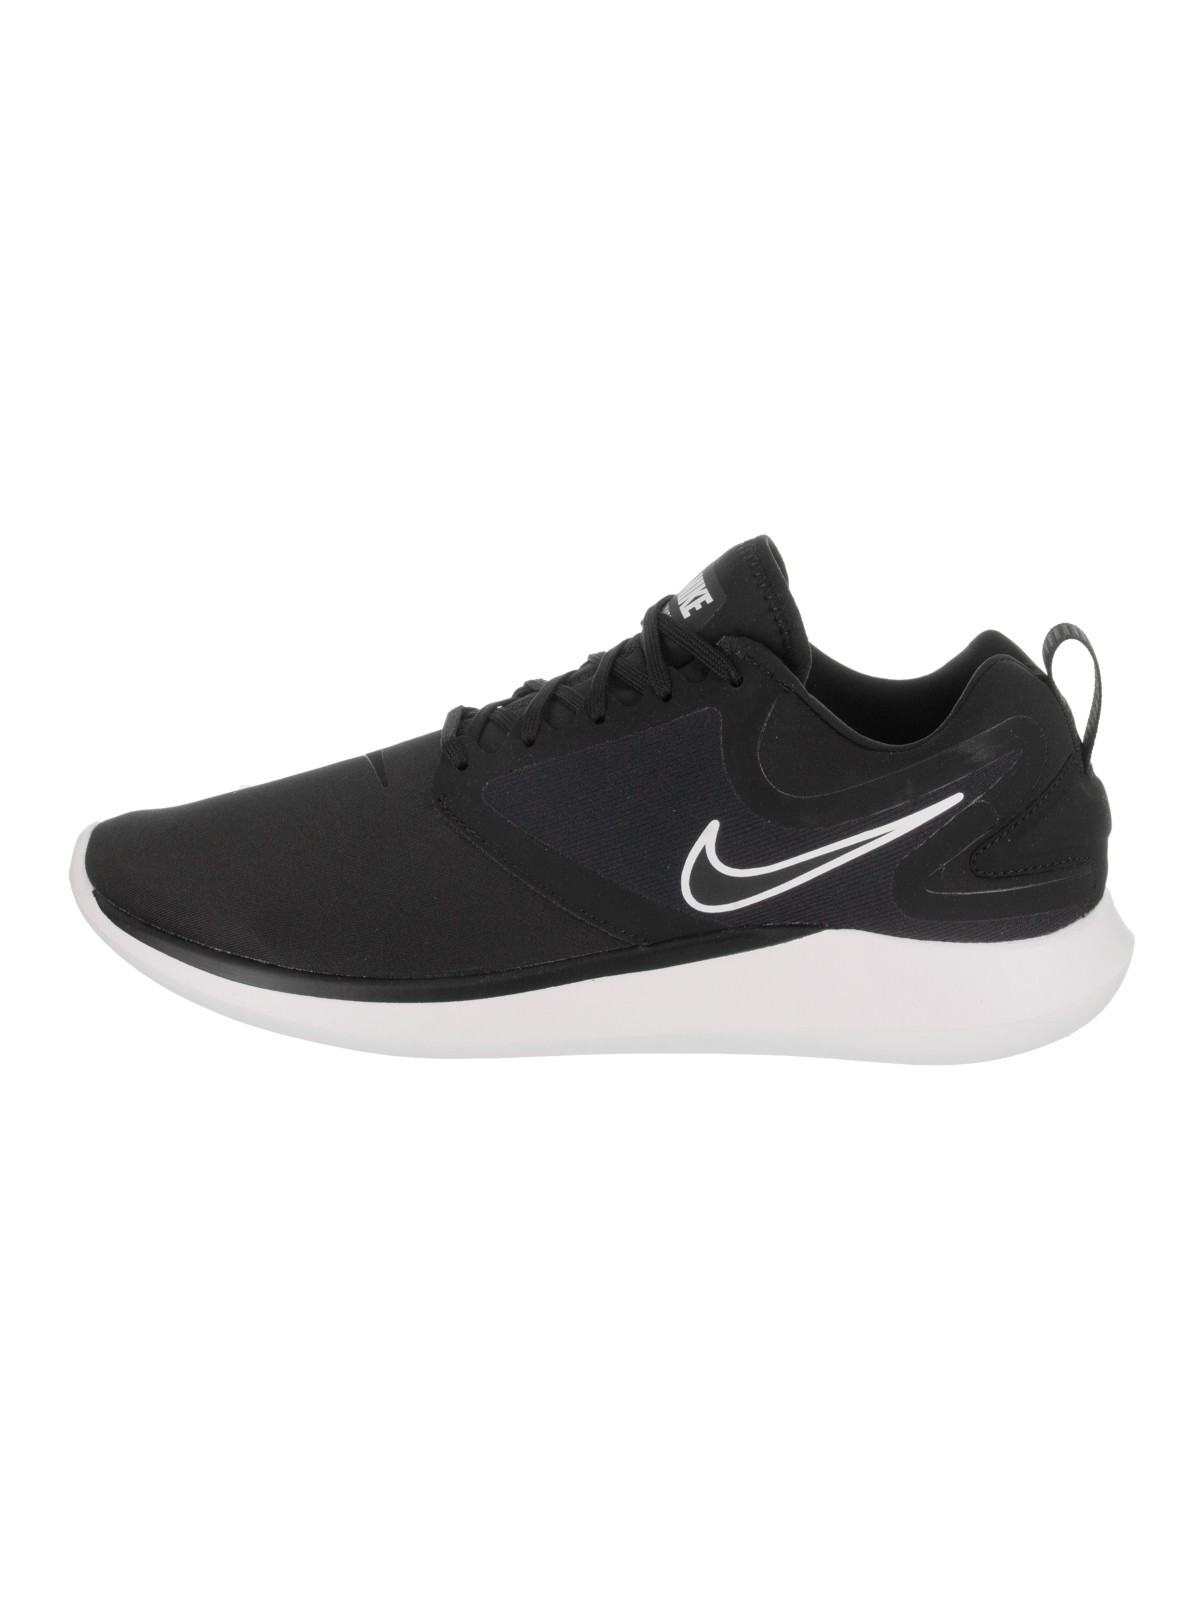 NIKE Men's Lunarsolo Running Shoes Economical, stylish, and eye-catching shoes